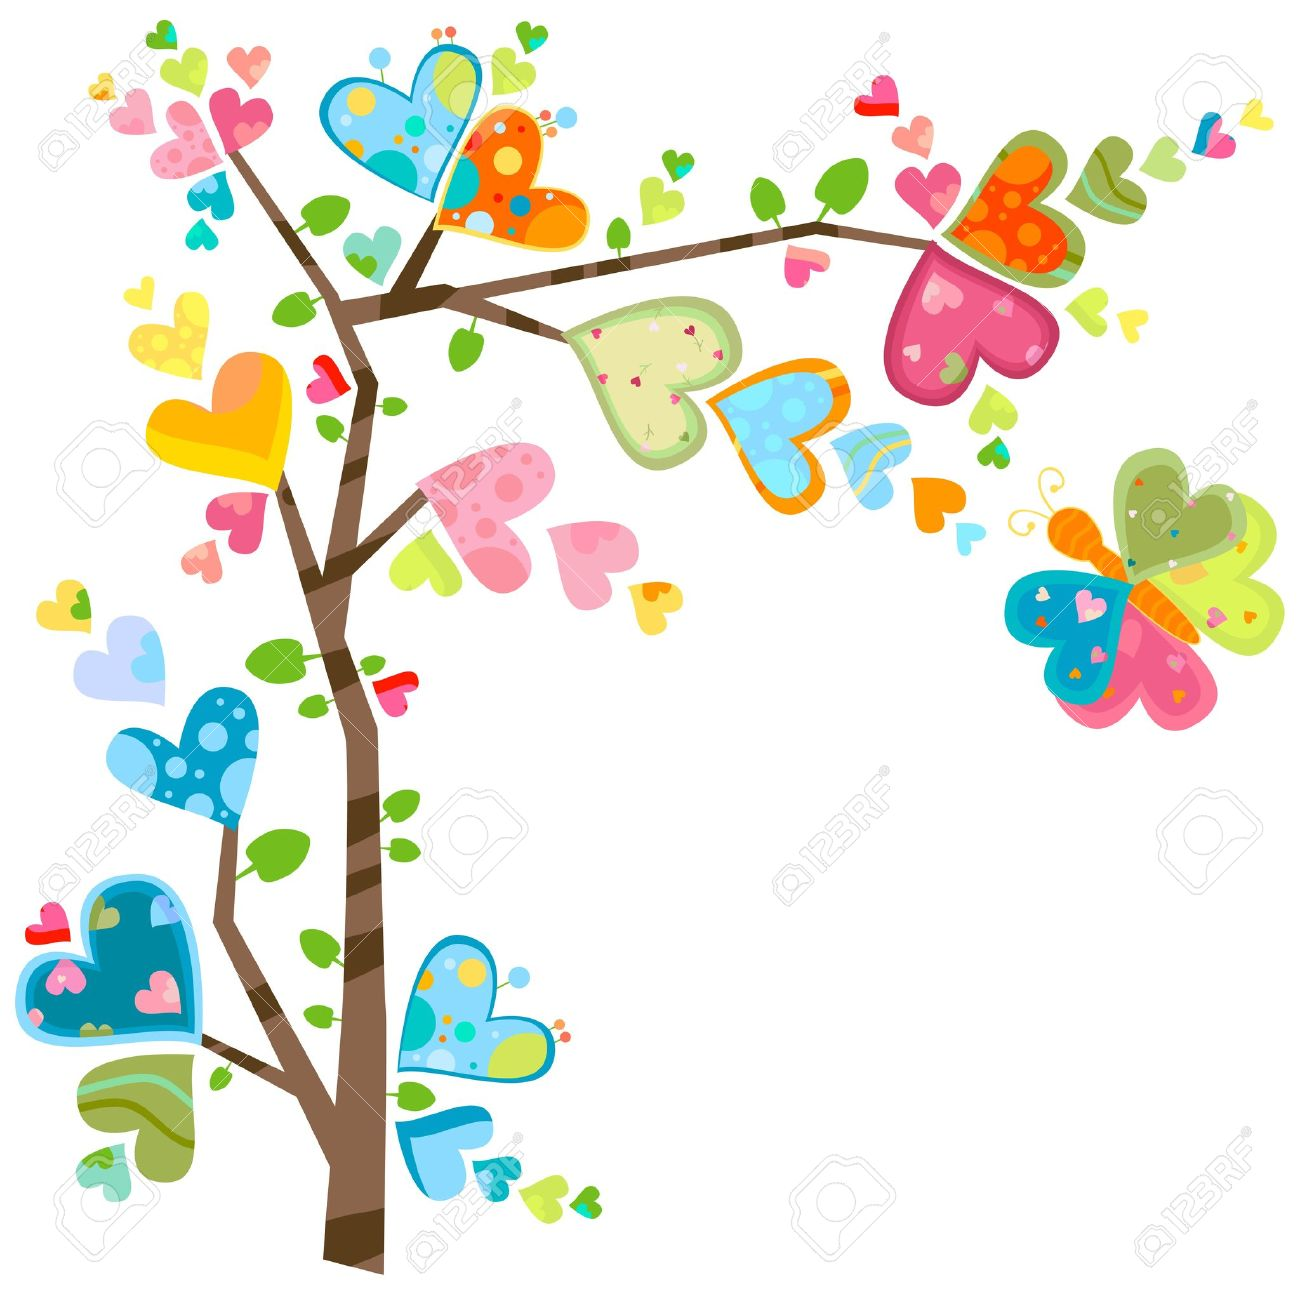 Love And Flower Tree In Spring Royalty Free Cliparts Vectors And Stock Illustration Image 12428610